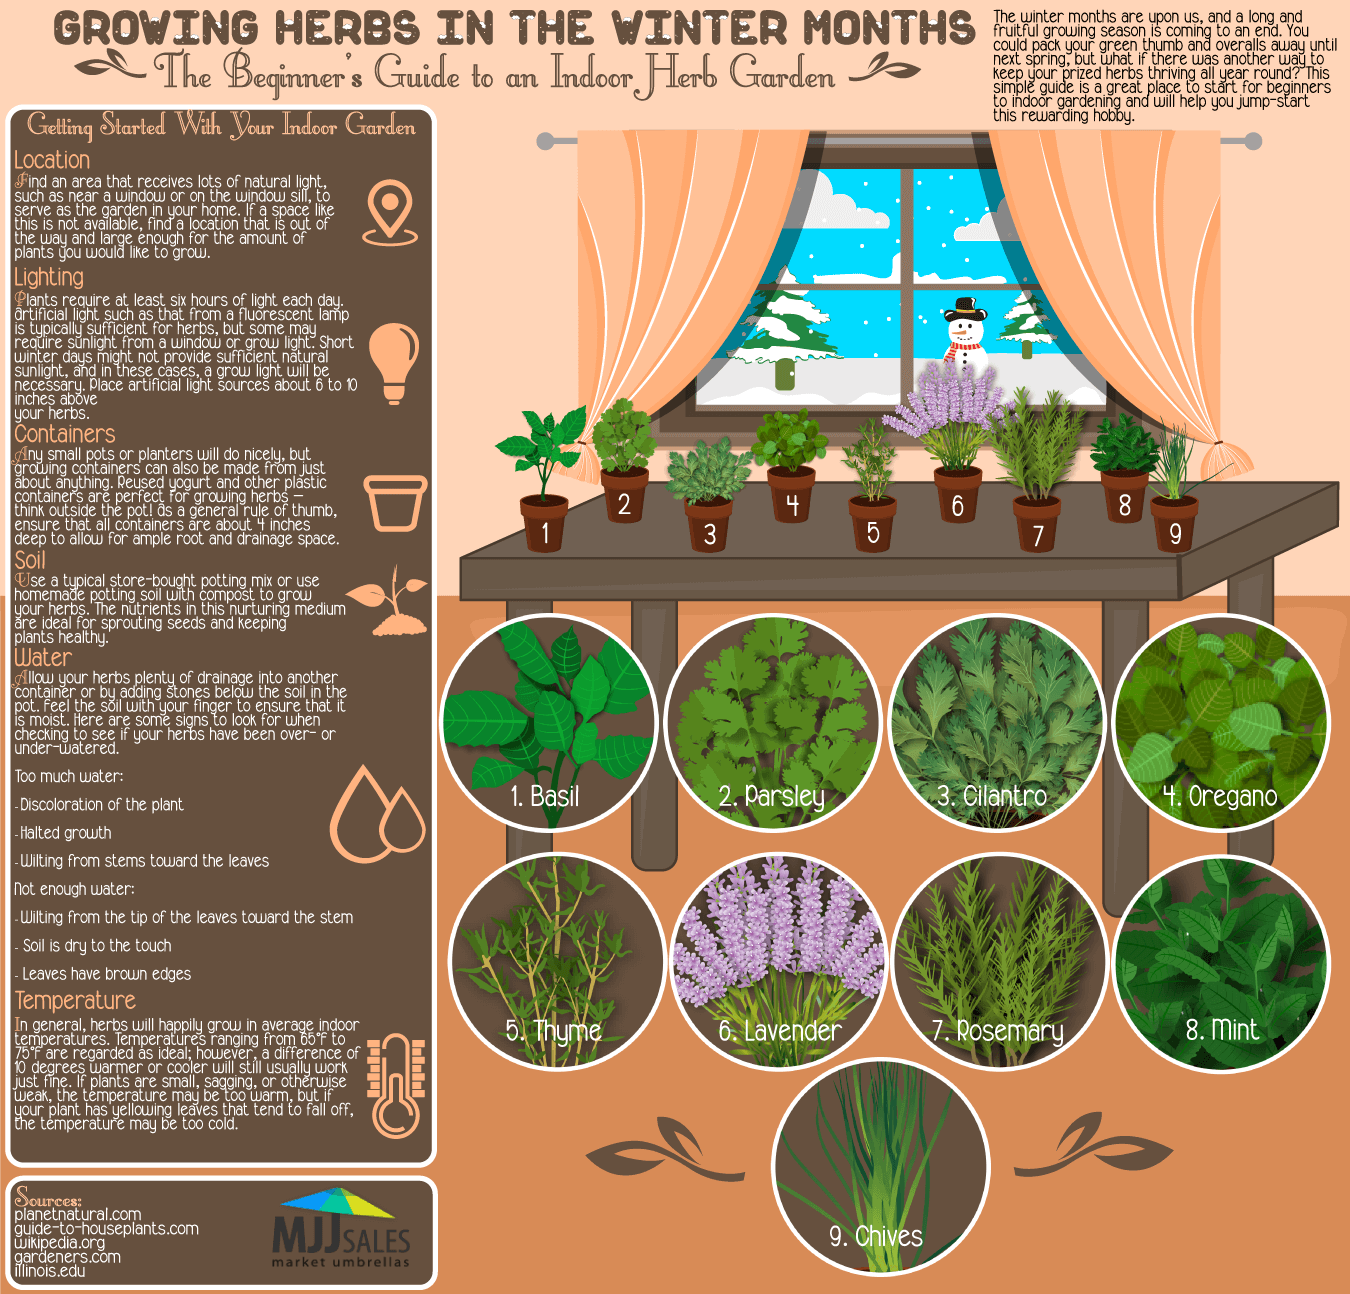 Growing Herbs in the Winter Months